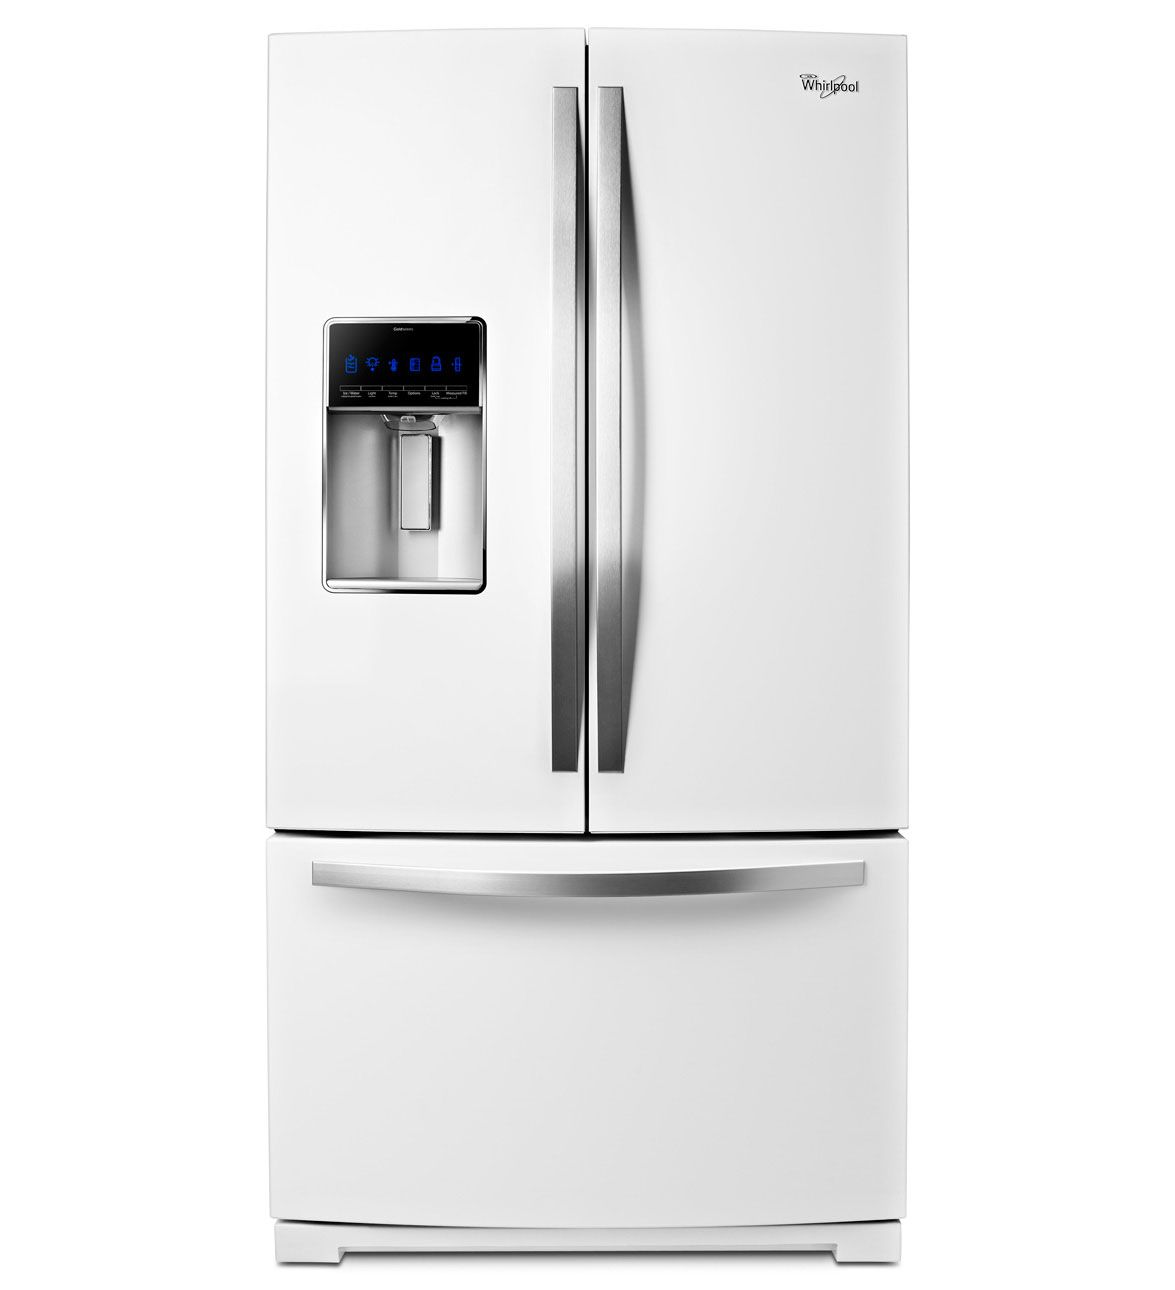 whirlpool has a new appliance color  check out the white ice collection  this whirlpool 29 cu  french door refrigerator offers enough space to hold bulk     whirlpool   29 cu  ft  french door refrigerator with the most fresh      rh   pinterest com